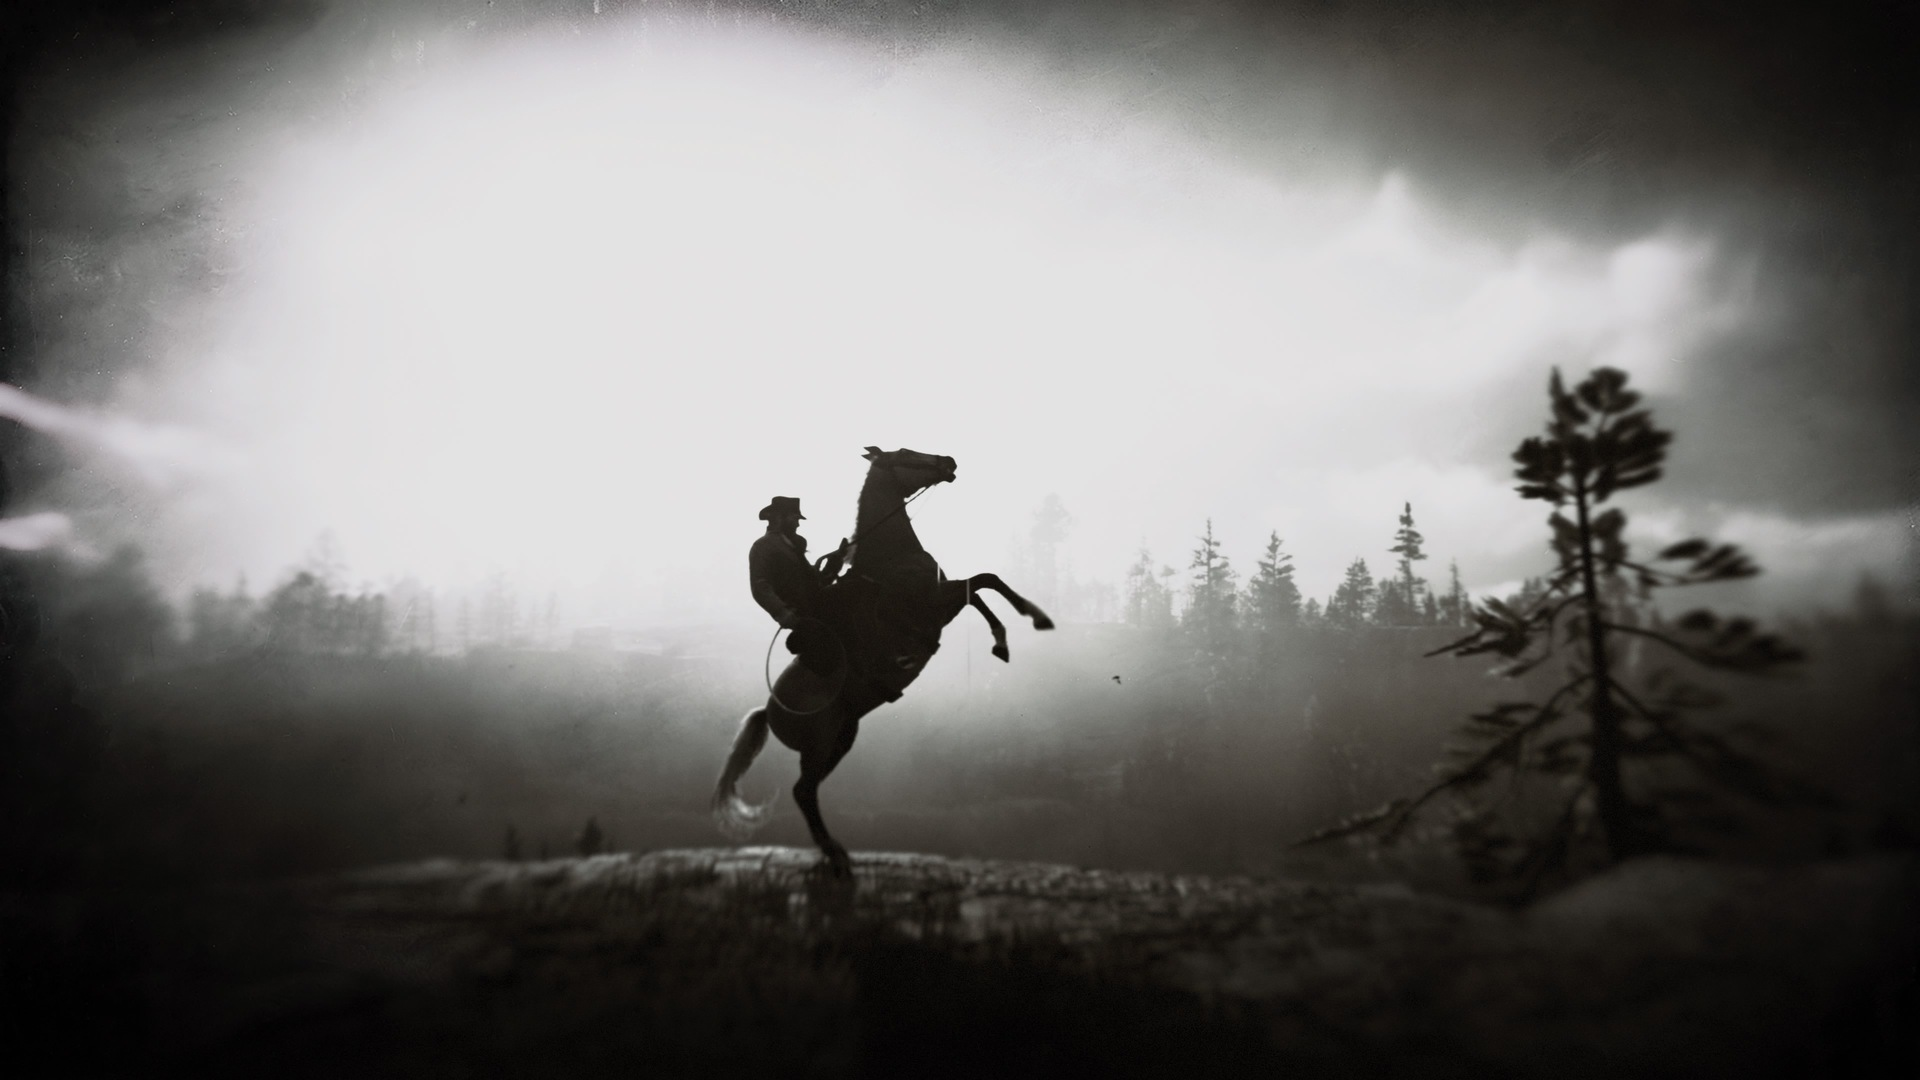 Red Dead Redemption 2 4k Wallpaper: 1920x1080 Red Dead Redemption 2 Horse Ride 4k Laptop Full